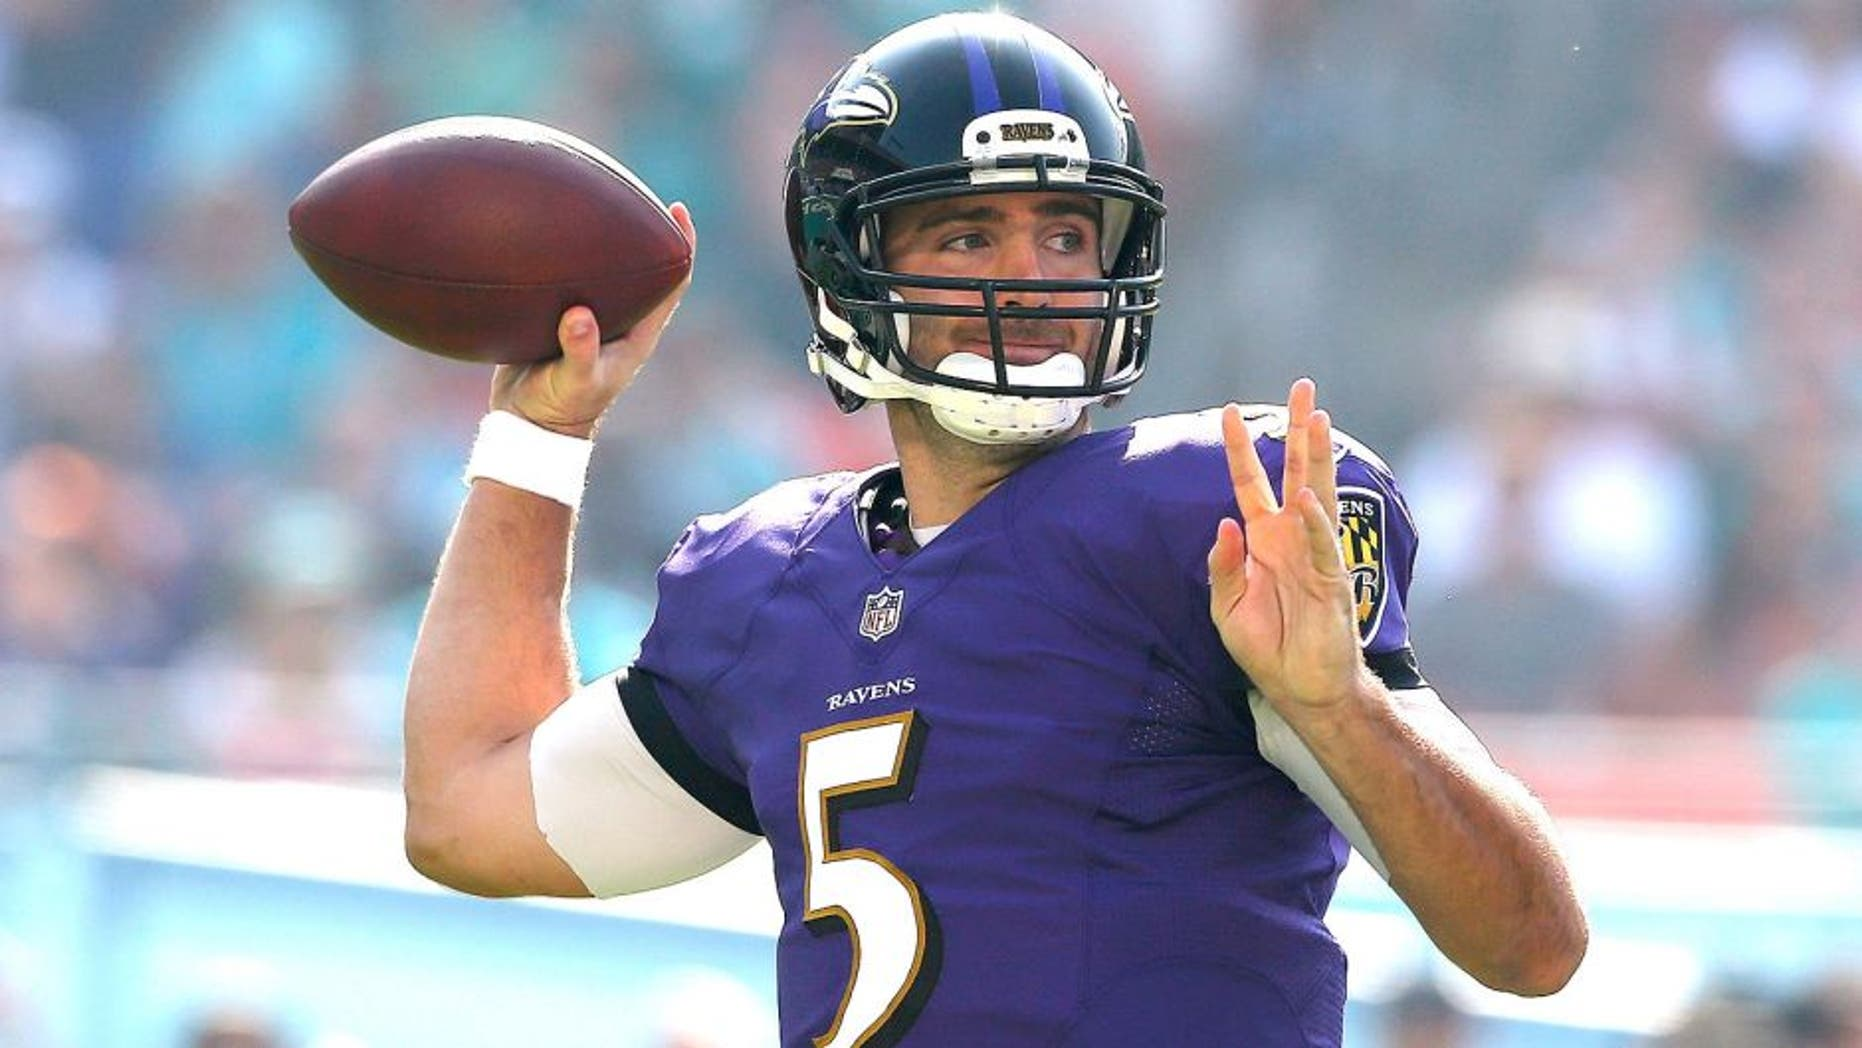 MIAMI GARDENS, FL - DECEMBER 07: Quarterback Joe Flacco #5 of the Baltimore Ravens throws against the Miami Dolphins in the second quarter during a game at Sun Life Stadium on December 7, 2014 in Miami Gardens, Florida. (Photo by Mike Ehrmann/Getty Images)